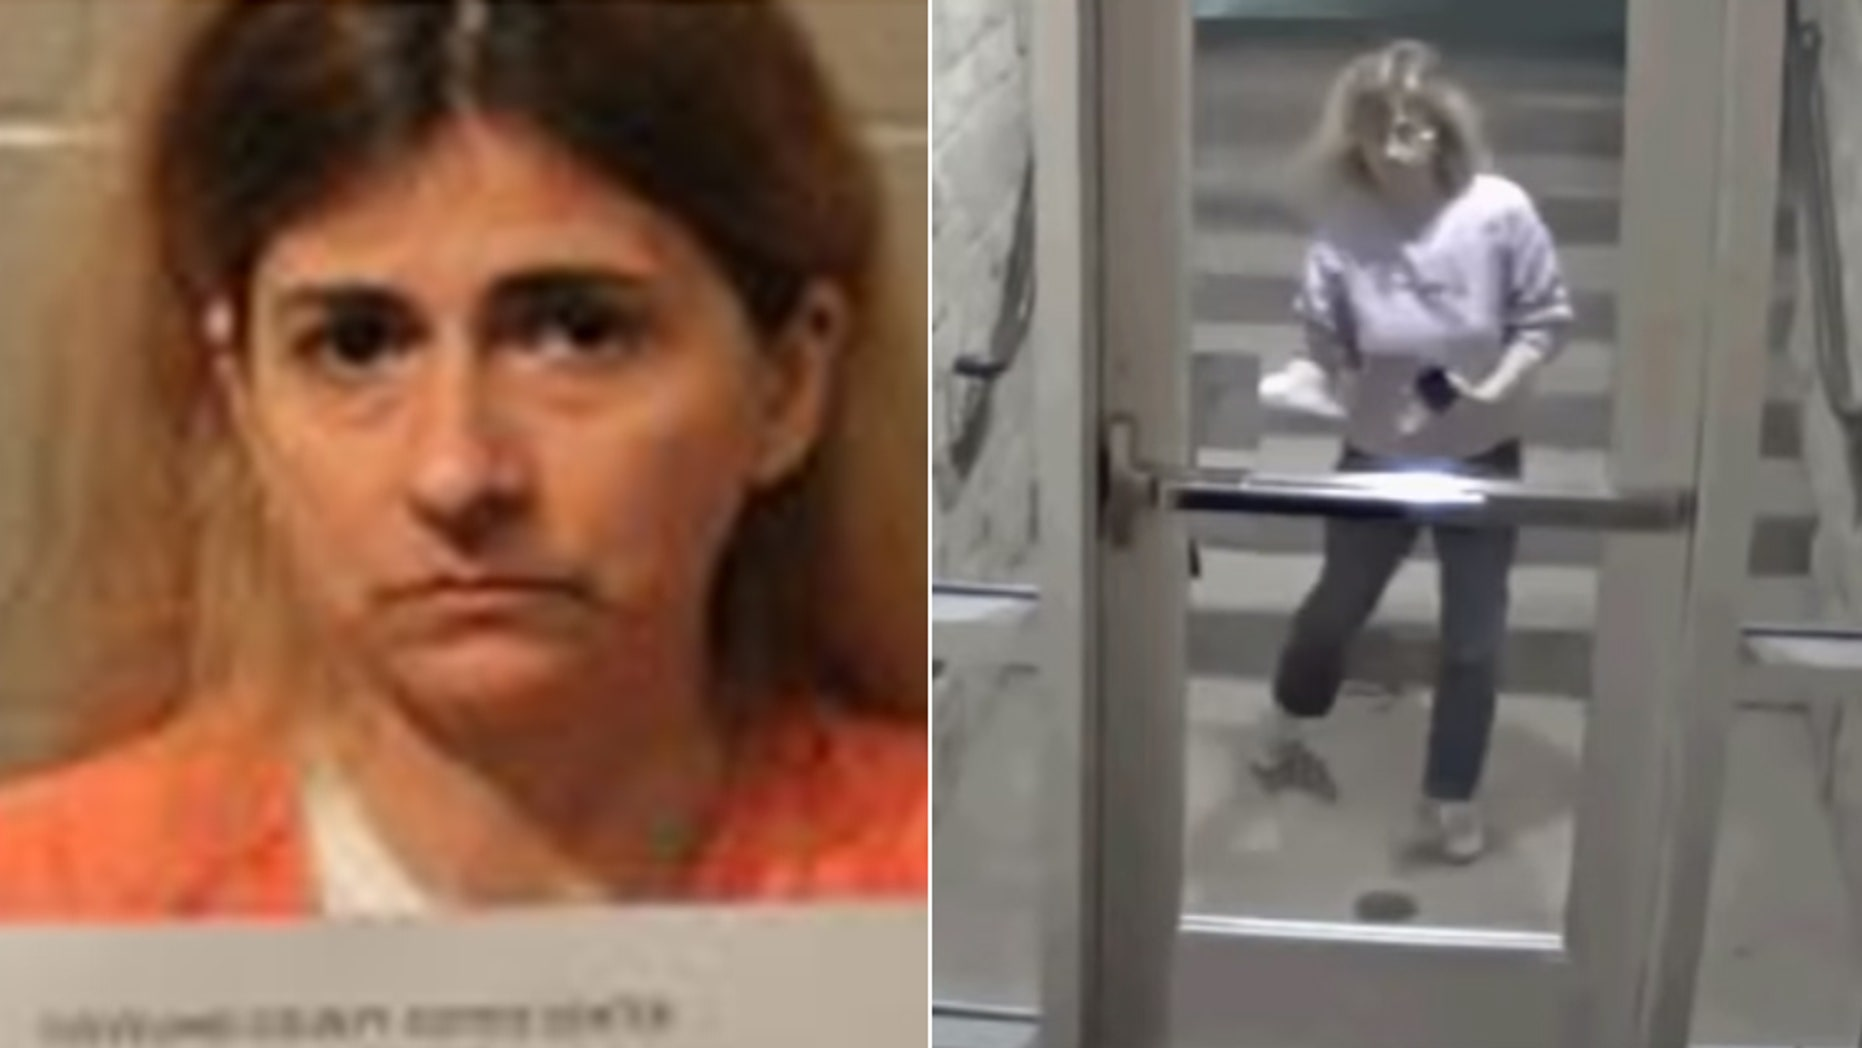 Allison Christine Johnson has been arrested after allegedly spray-painting swastikas, racist and anti-Semitic graffiti on buildings in Oklahoma.